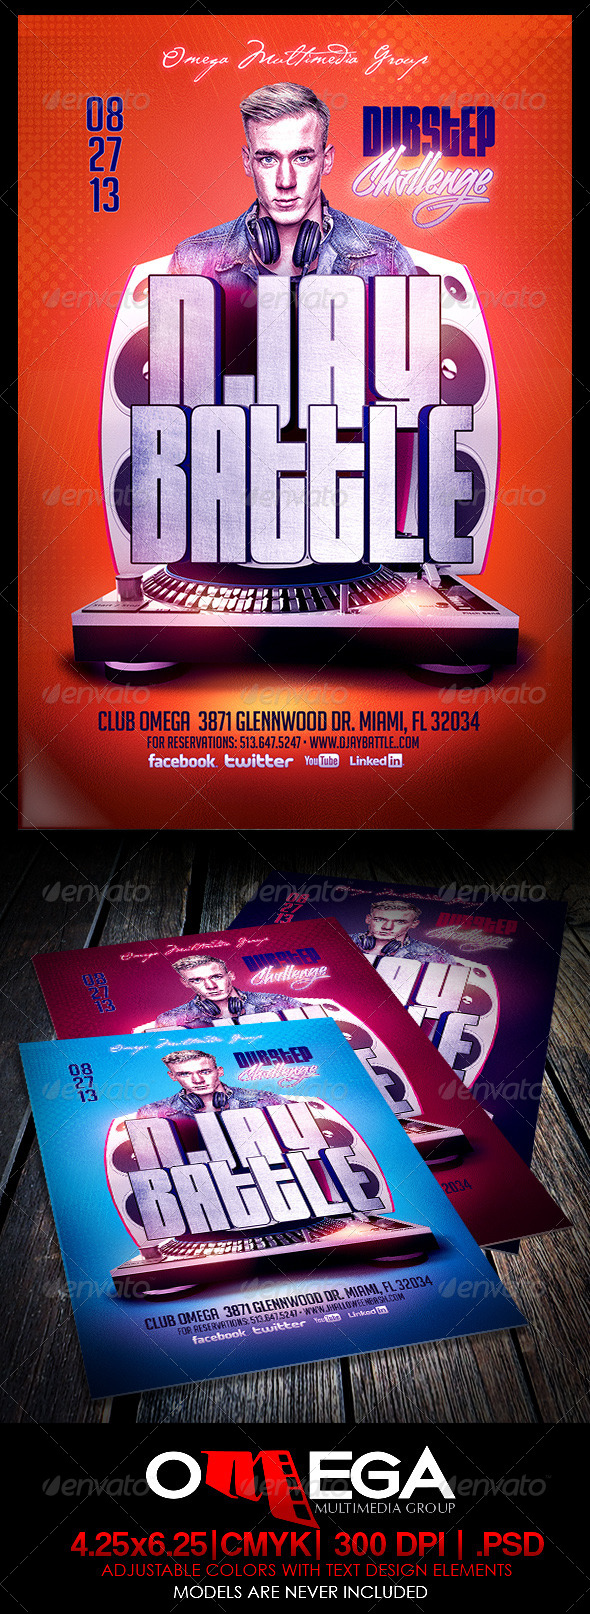 GraphicRiver DJay Battle Dubstep Challenge 5491182